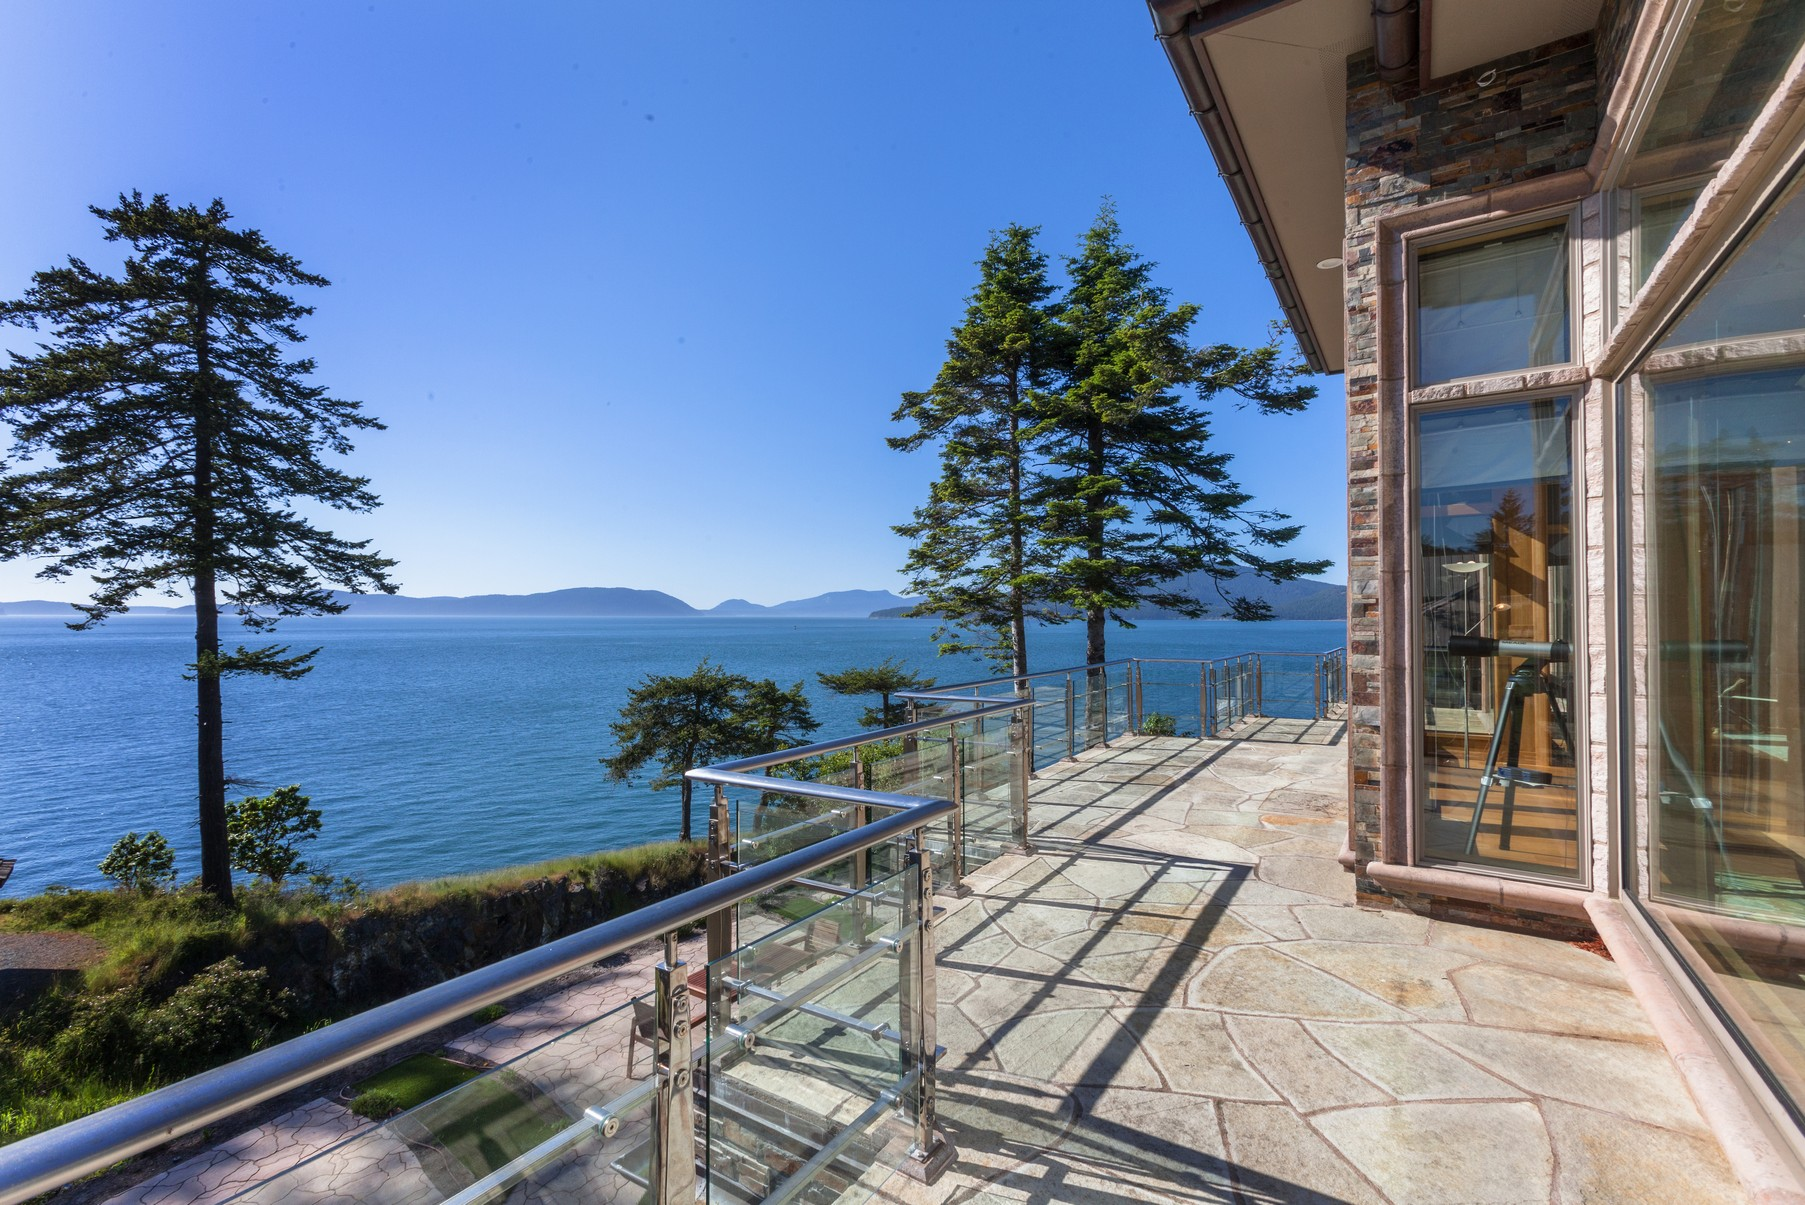 By the Numbers - The average and median selling prices of all 42 waterfront sales at Anacortes were $975,000 and $827,500, respectively. Separately, the four waterfront condominium units sold in this area averaged $685,000.